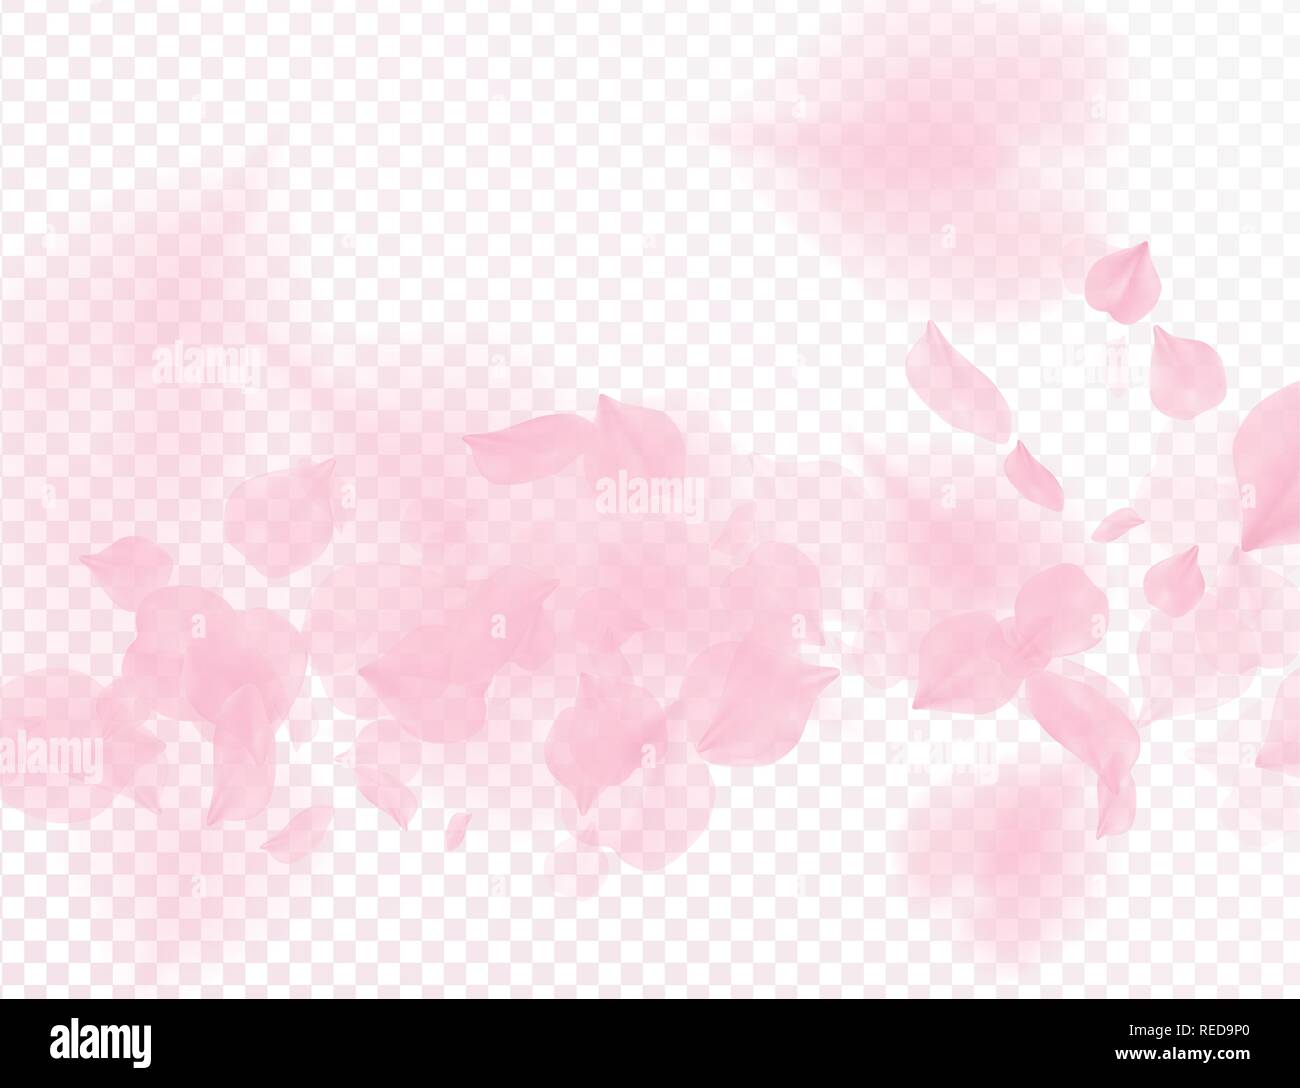 Pink sakura flower falling petals vector transparent background. 3D romantic valentines day illustration. Spring tender light backdrop. Overlay tender - Stock Vector